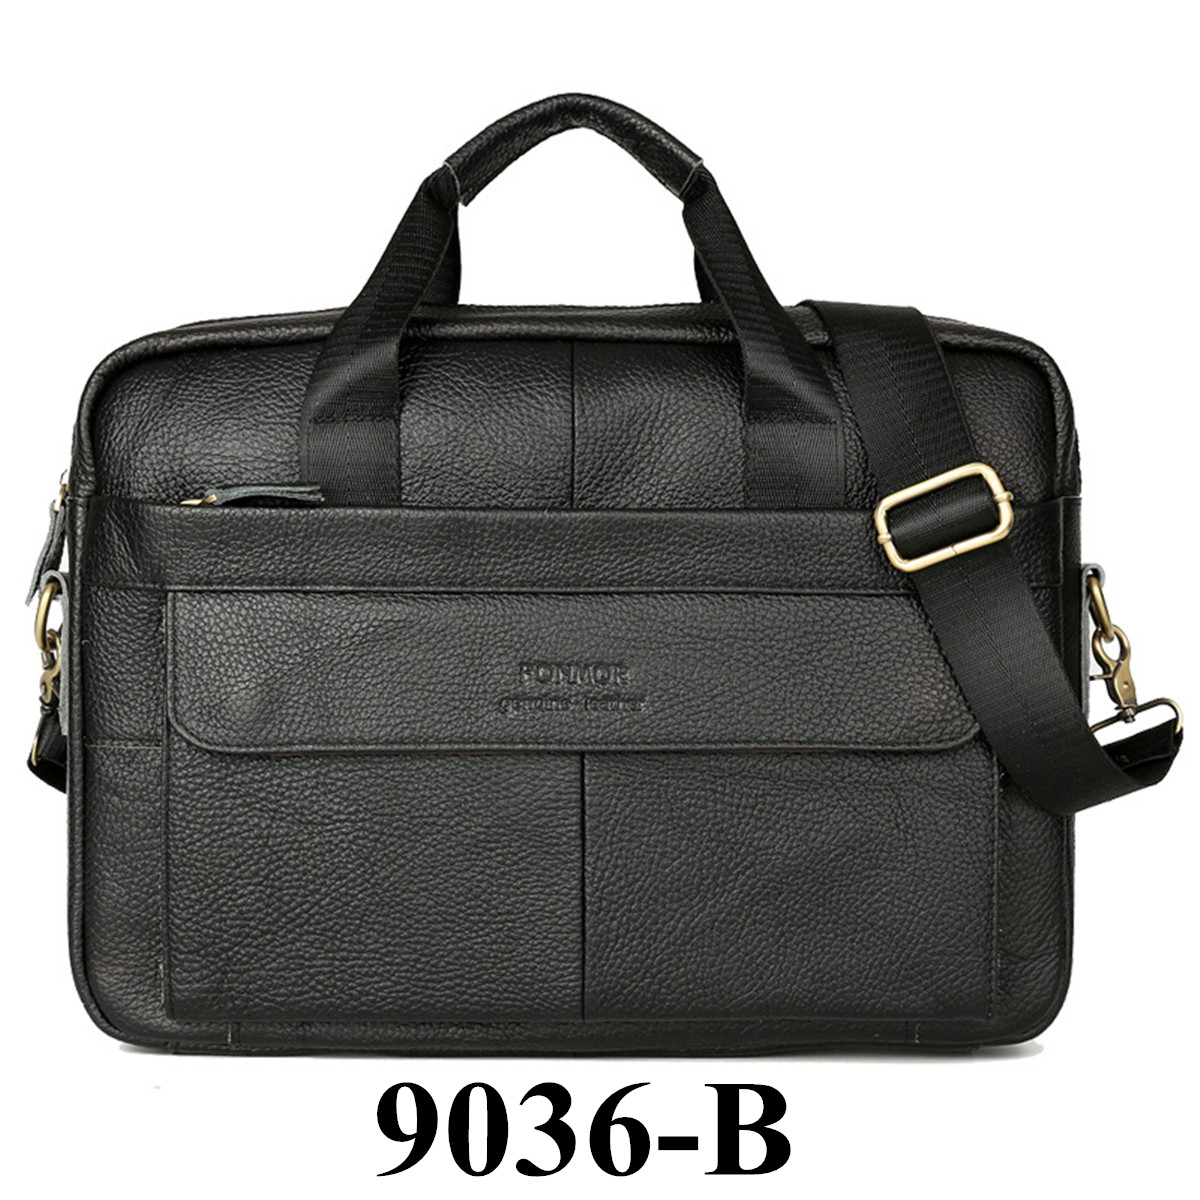 Men's Genuine Leather Crossbody Bags Handbags Cowhide Leather Briefcase Mens High Quality Luxury Business Messenger Bags Laptop